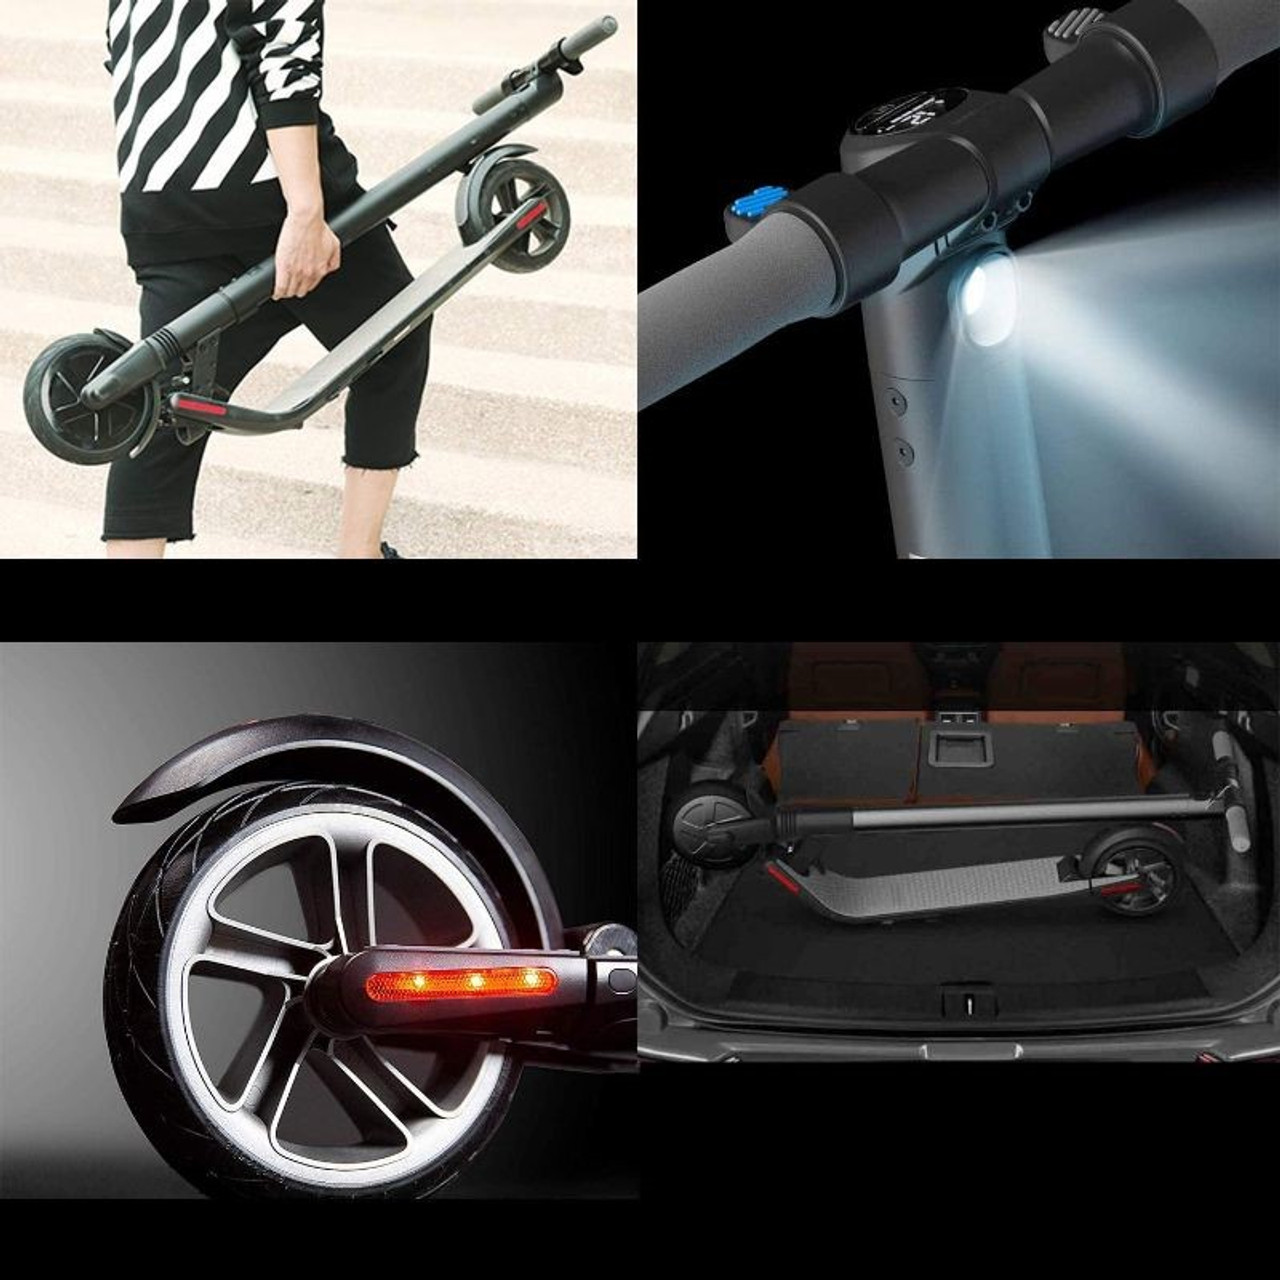 Segway Ninebot ES4 Foldable Electric Kick Scooter with External Battery